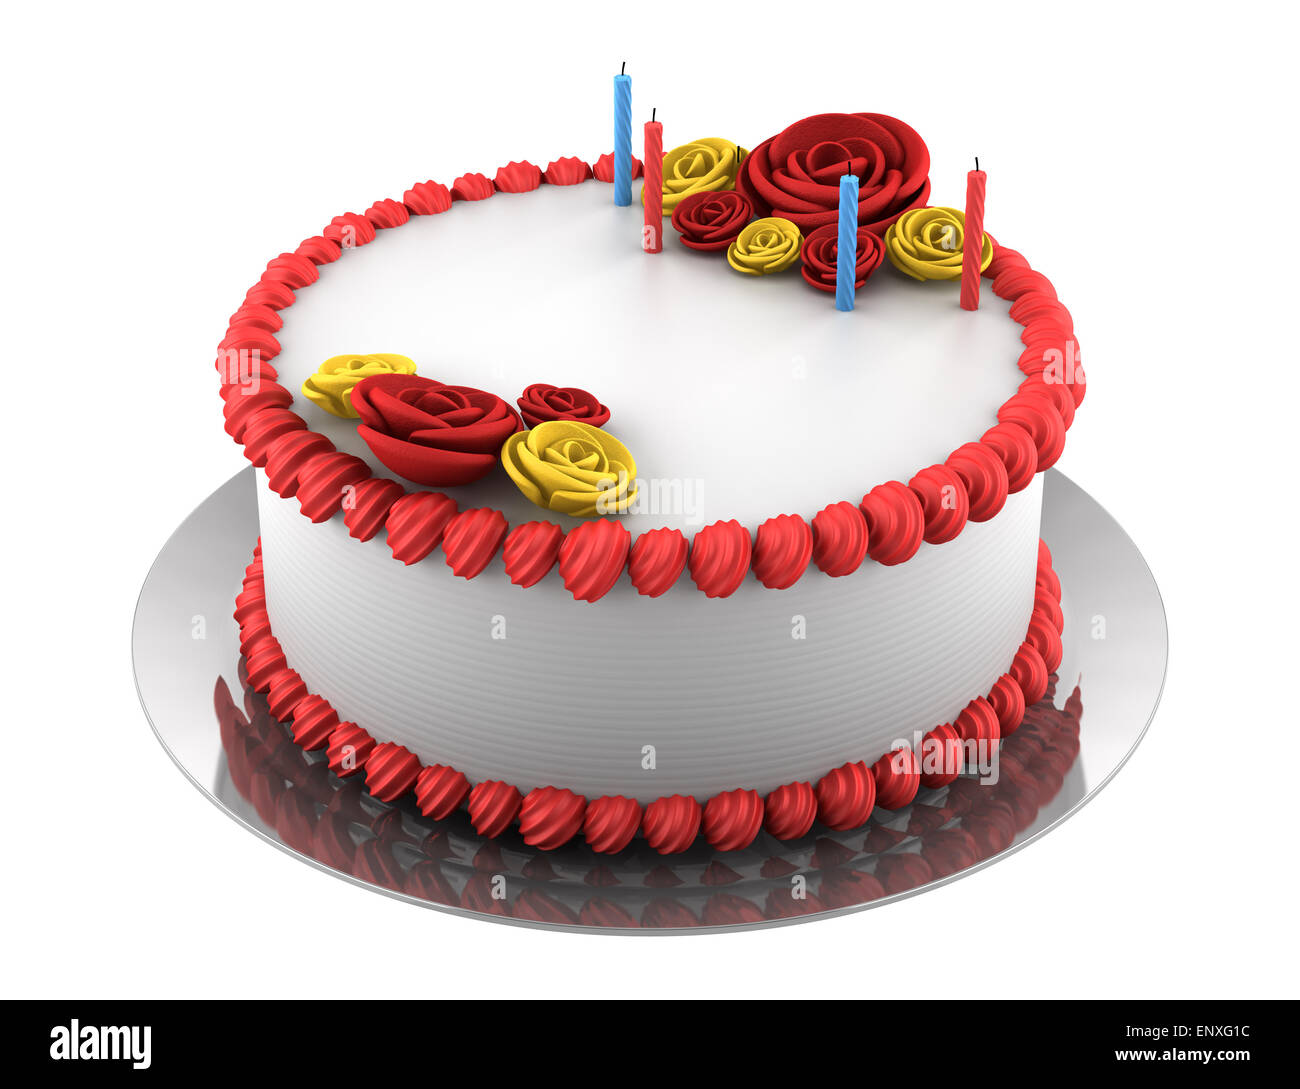 Phenomenal Round Birthday Cake With Candles Isolated On White Stock Photo Funny Birthday Cards Online Barepcheapnameinfo